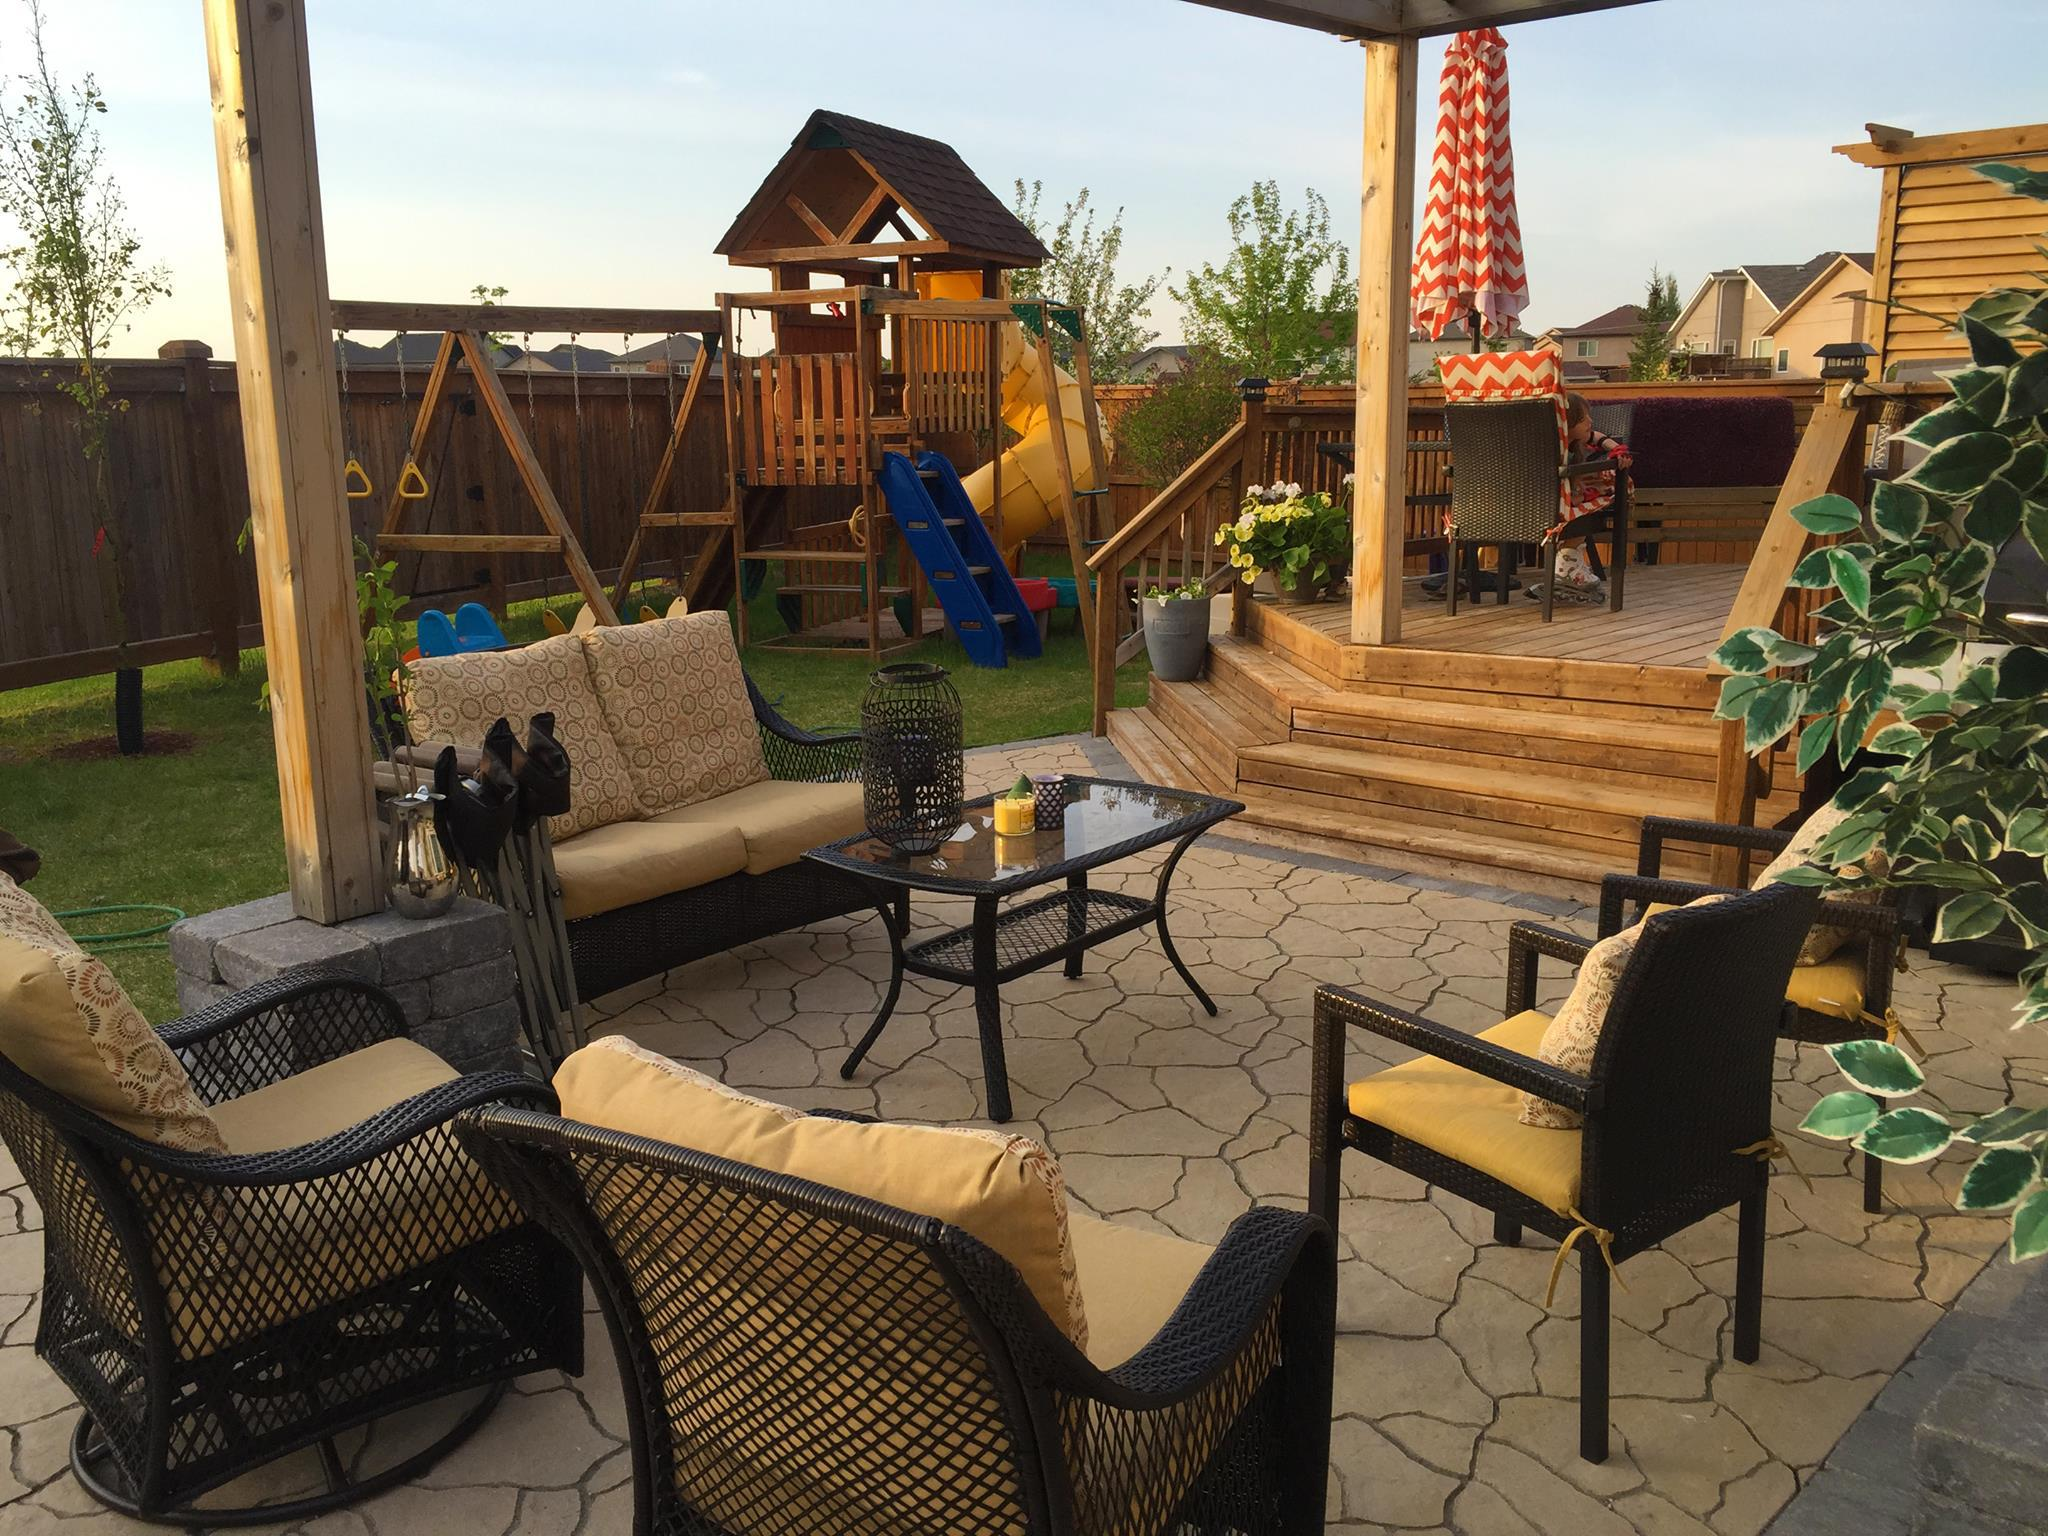 New Backyard Creations Patio Furniture